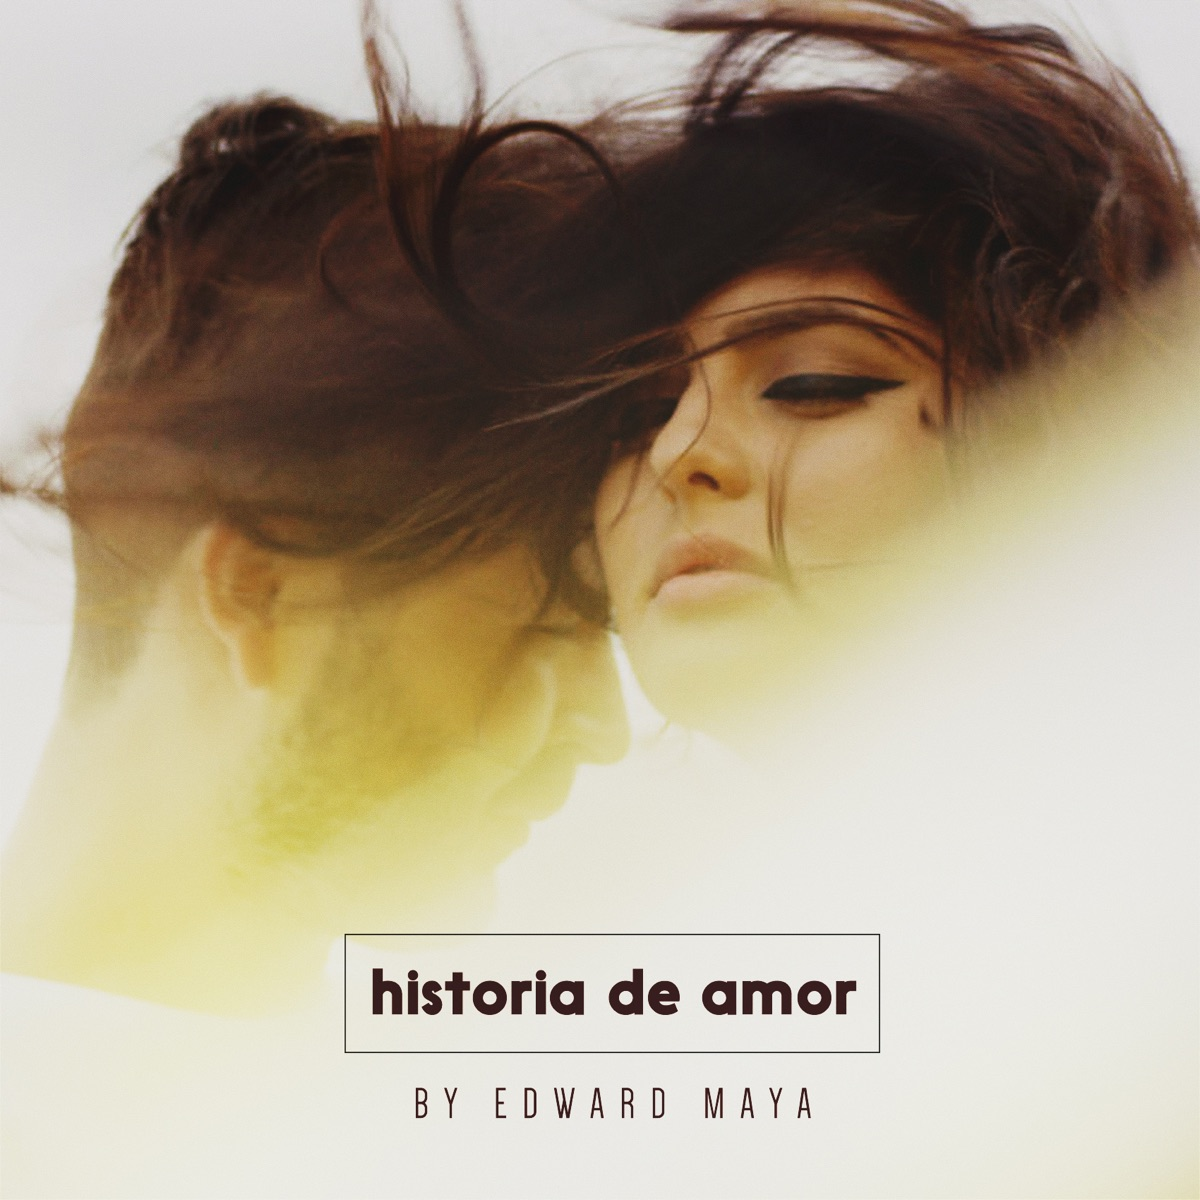 Historia De Amor - EP Album Cover by Edward Maya